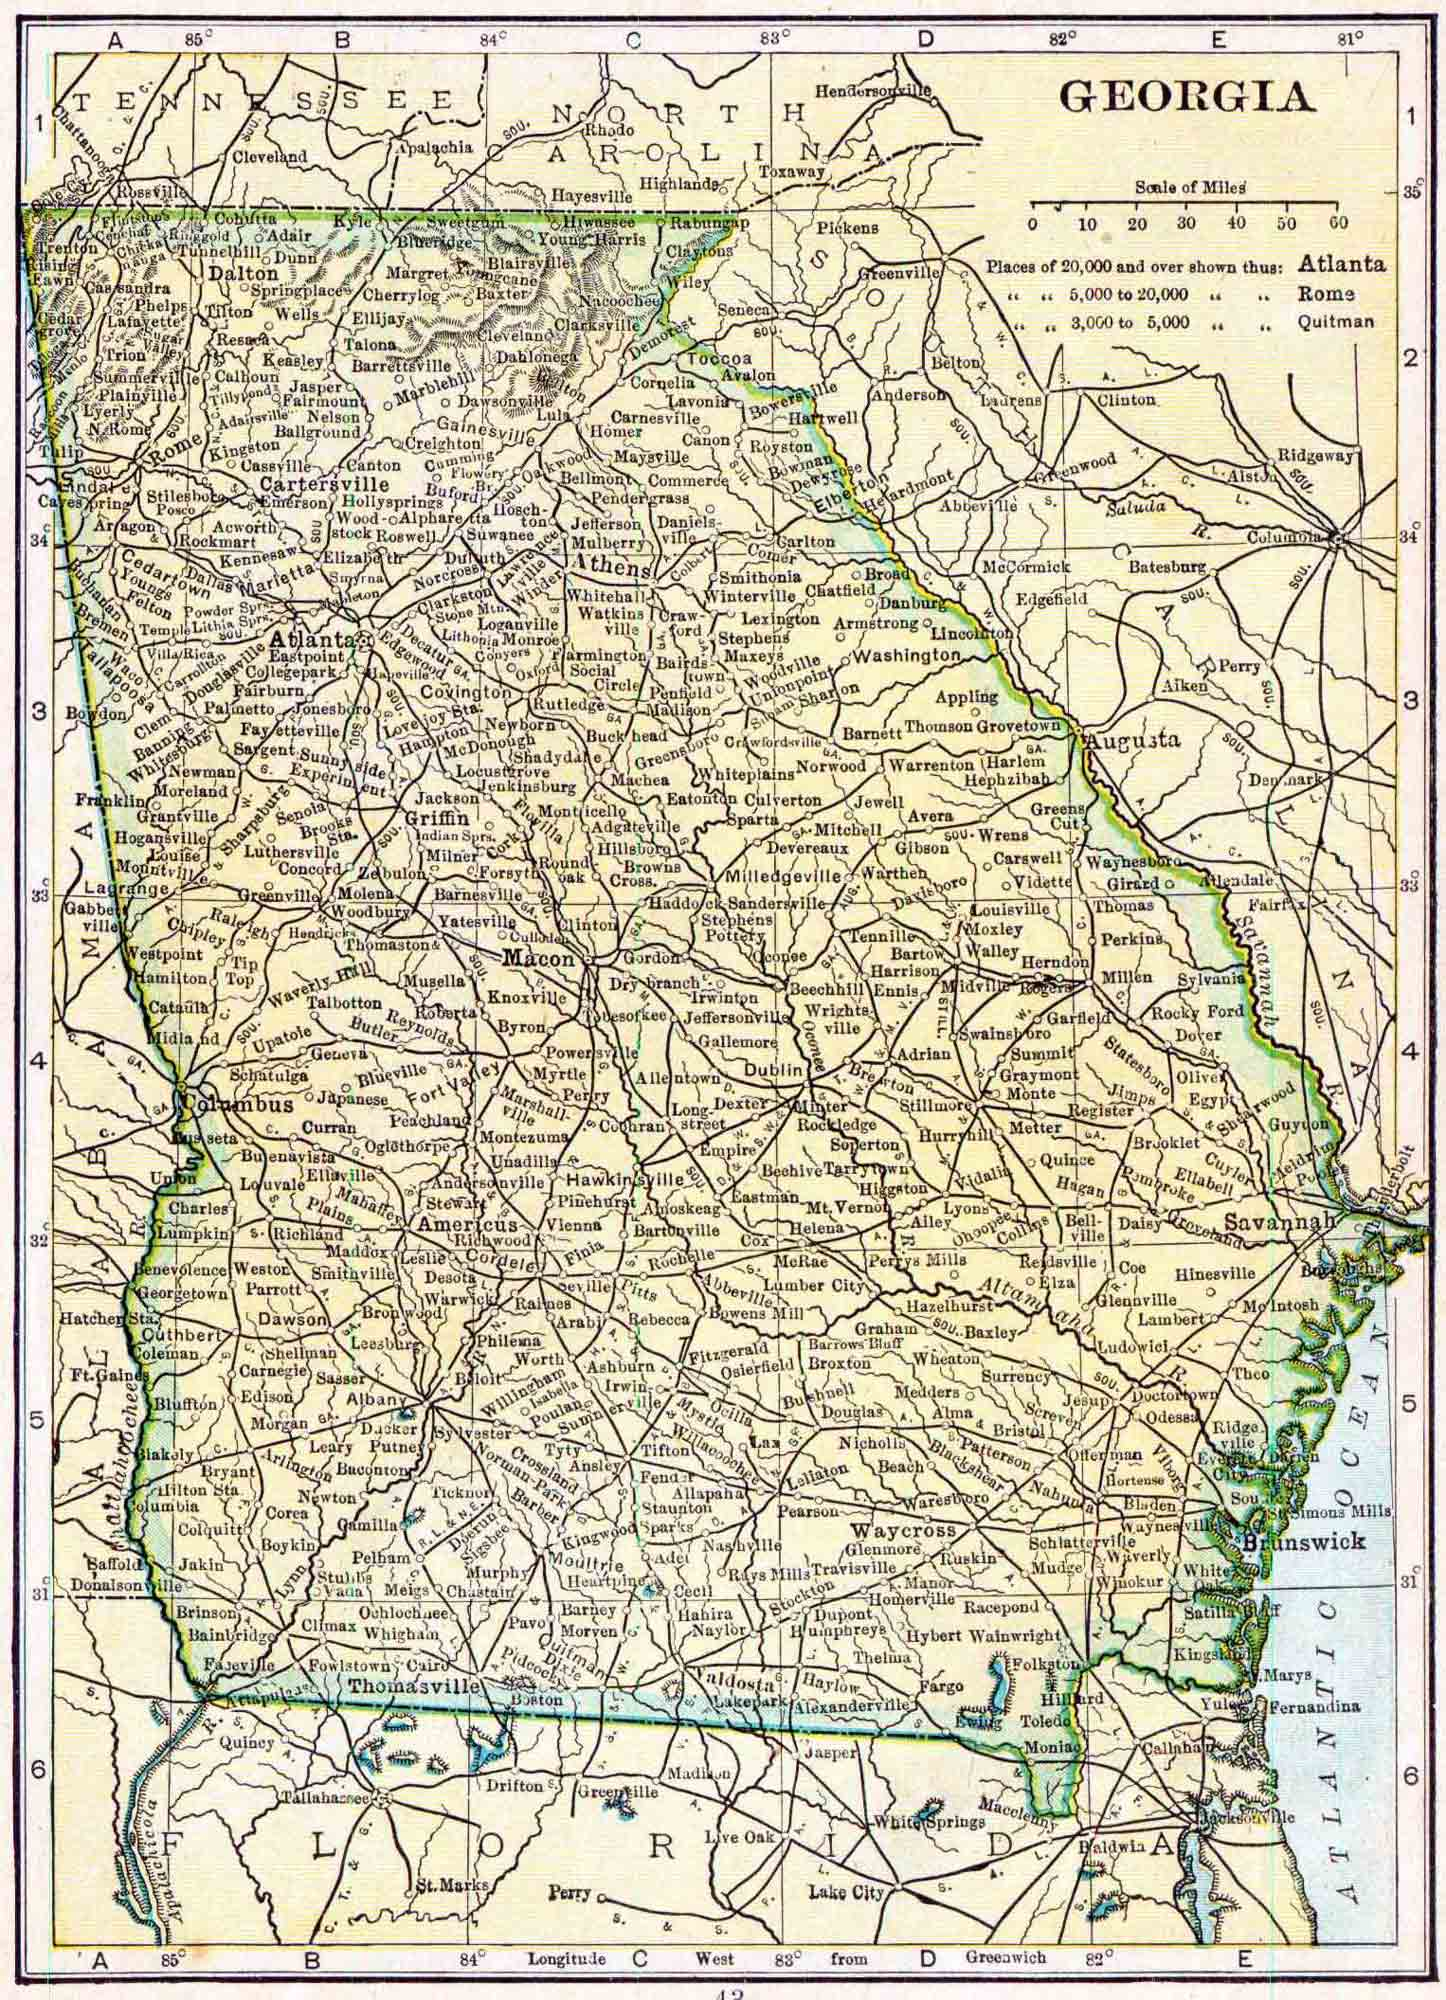 Georgia Genealogy - Free Georgia Genealogy | Access Genealogy